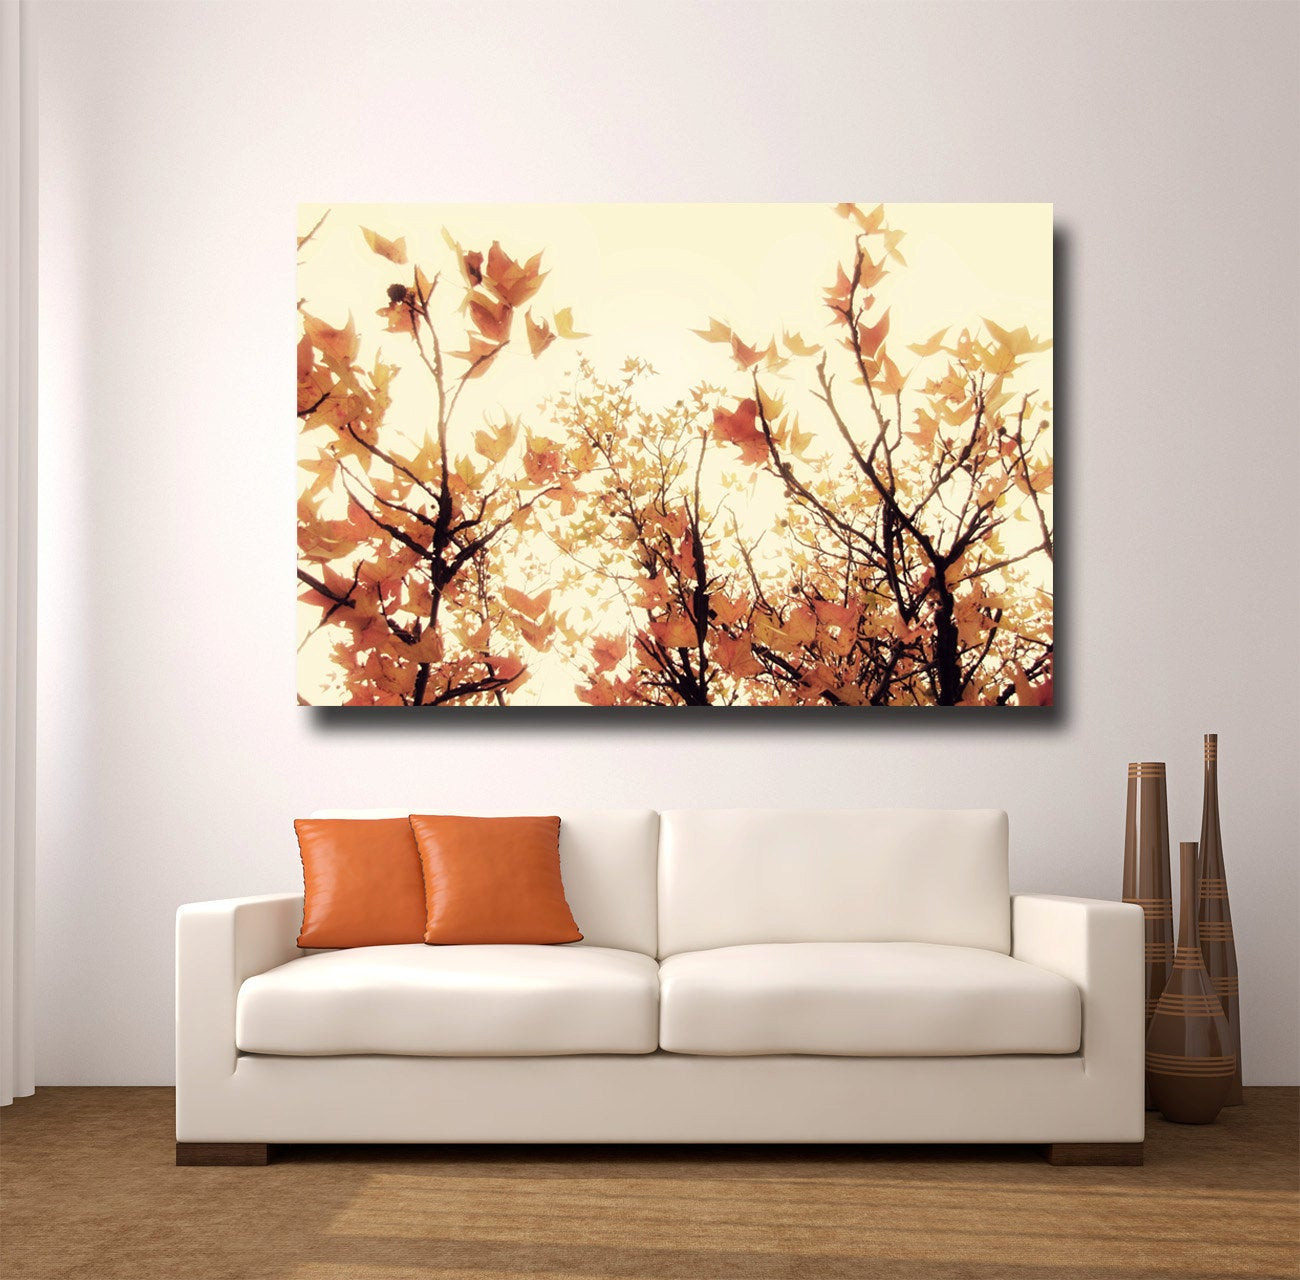 Best ideas about Wall Art Decor . Save or Pin Kitchen & Dining Now.